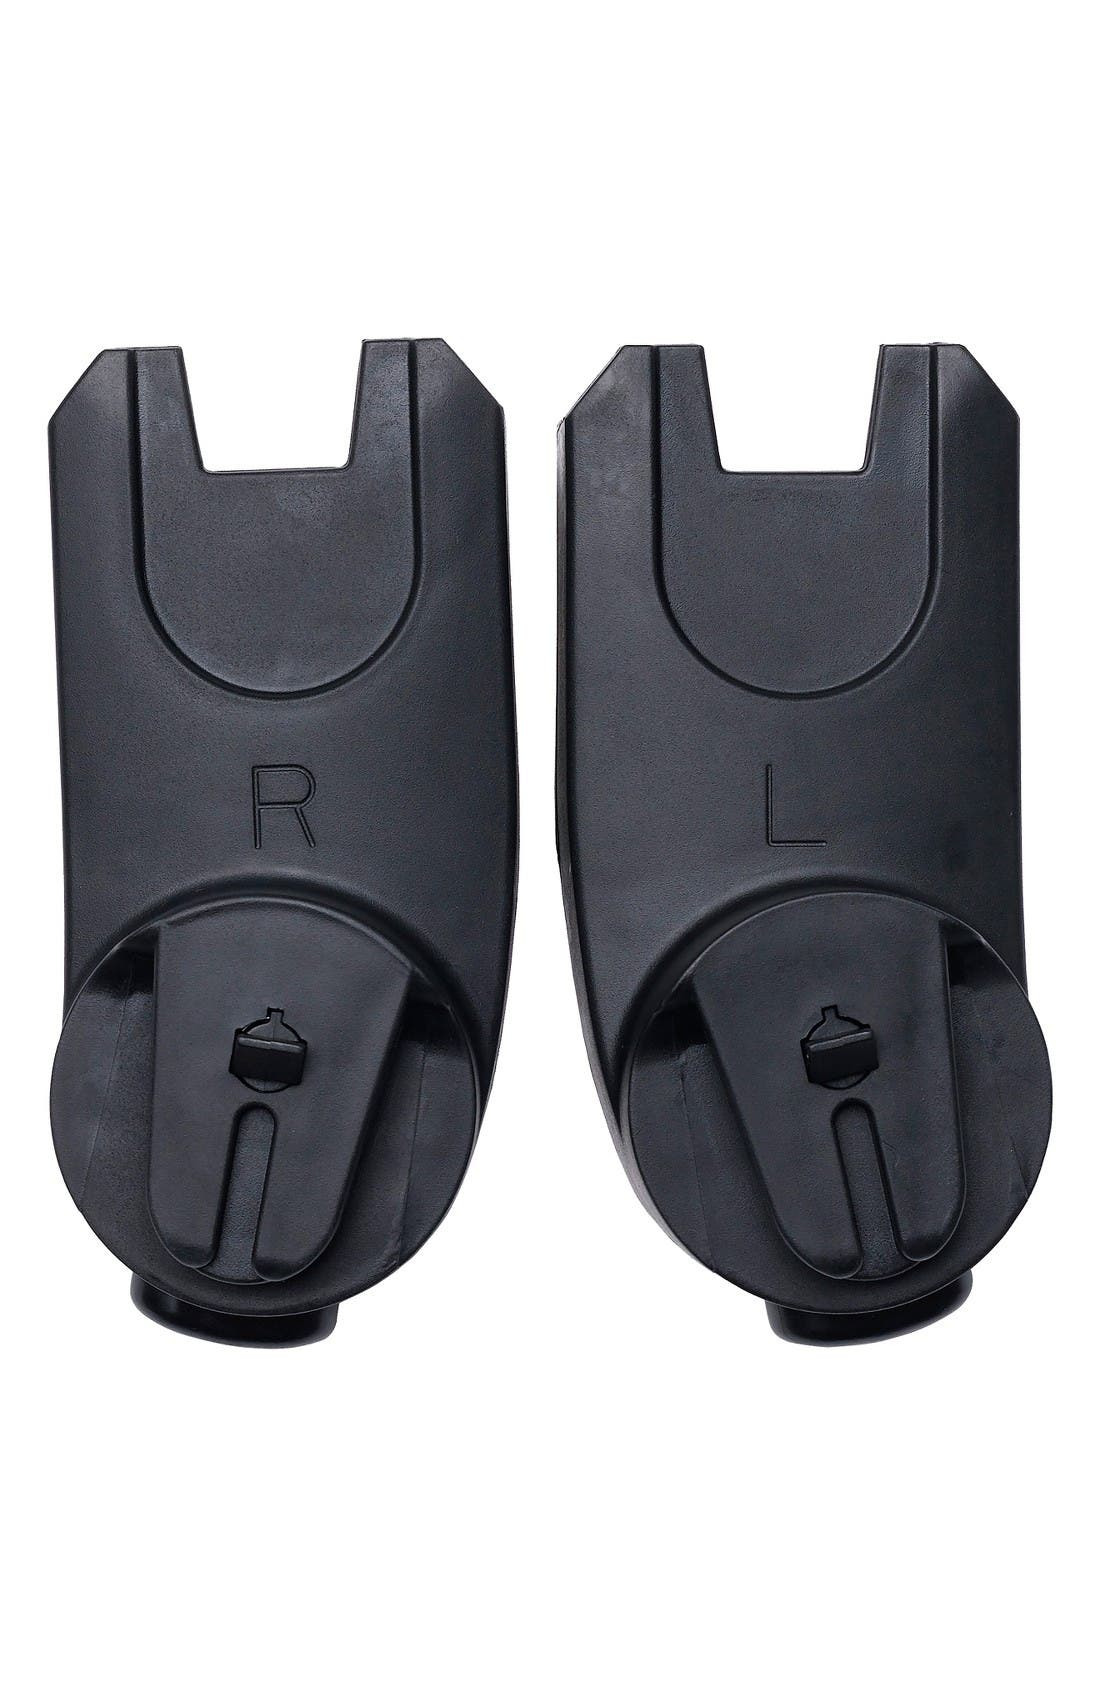 Alternate Image 1 Selected - Mima Car Seat Adaptor for Mima Xari Stroller and Maxi Cosi, Cybex & Nuna Car Seats